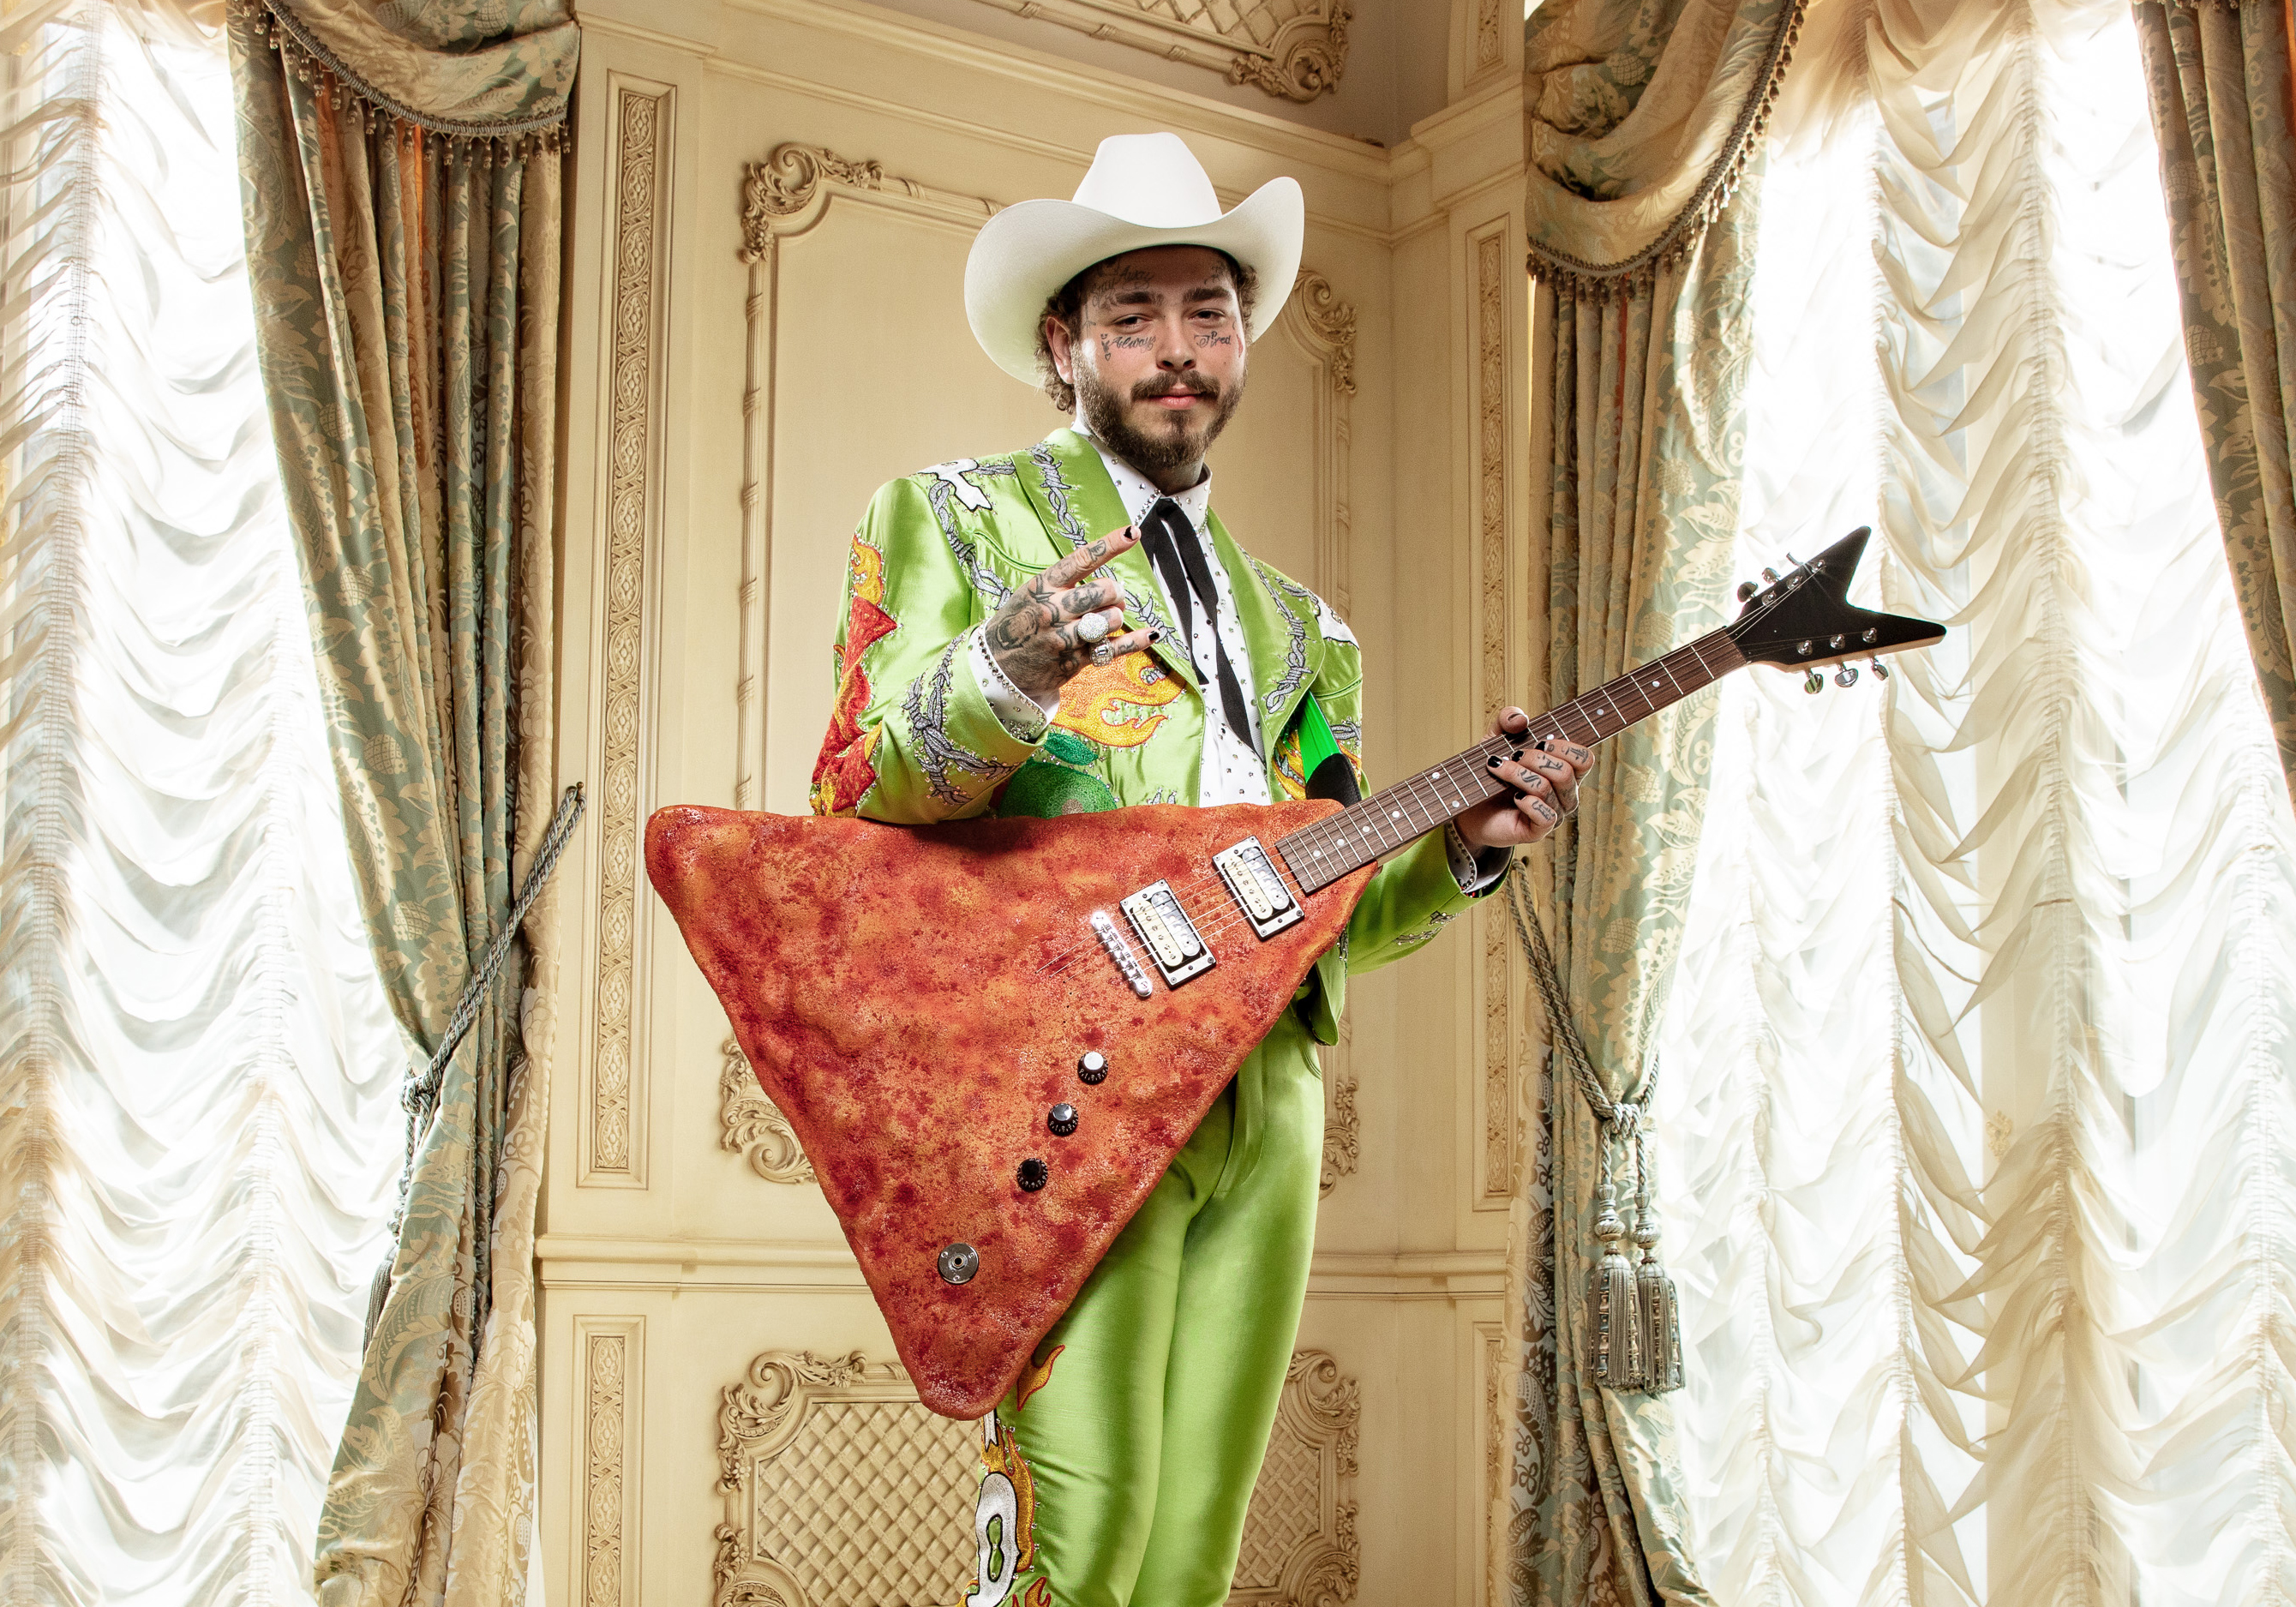 Doritos will boast a new commercial Post Malone for the upcoming 2020 Grammys, which airs on Sunday.